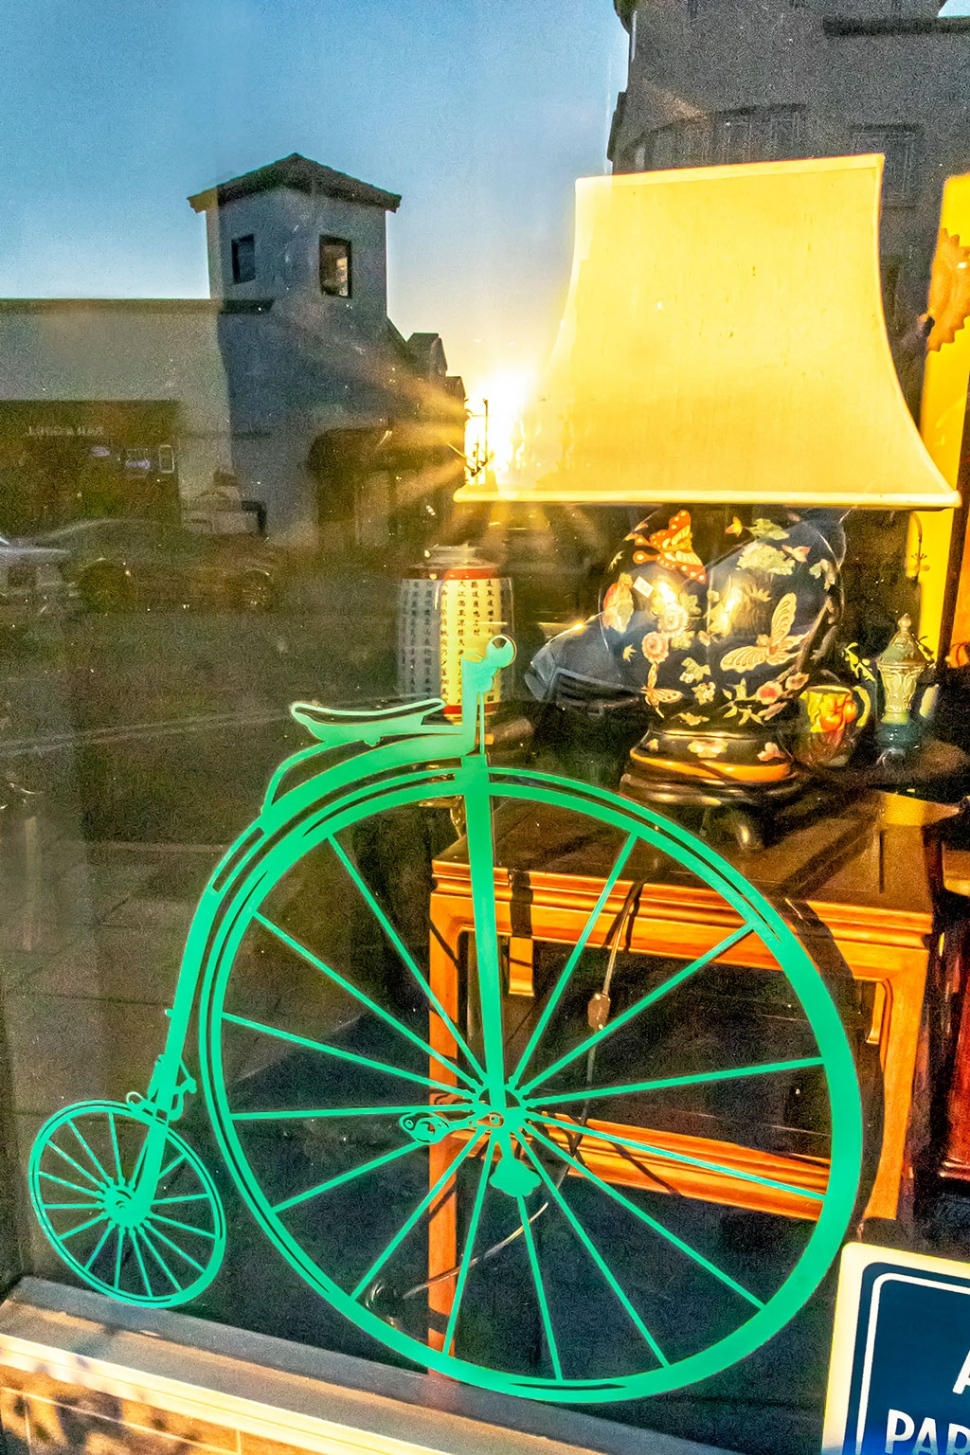 "Photo of the Week: ""Sun reflection on green unicycle in Central Avenue shop window"" by Bob Crum. Photo data: Canon 7D MKII camera, manual mode with Tamron 16-300mm lens @16mm. Exposure; ISO 16000, aperture f/22, 1/500th second shutter speed."